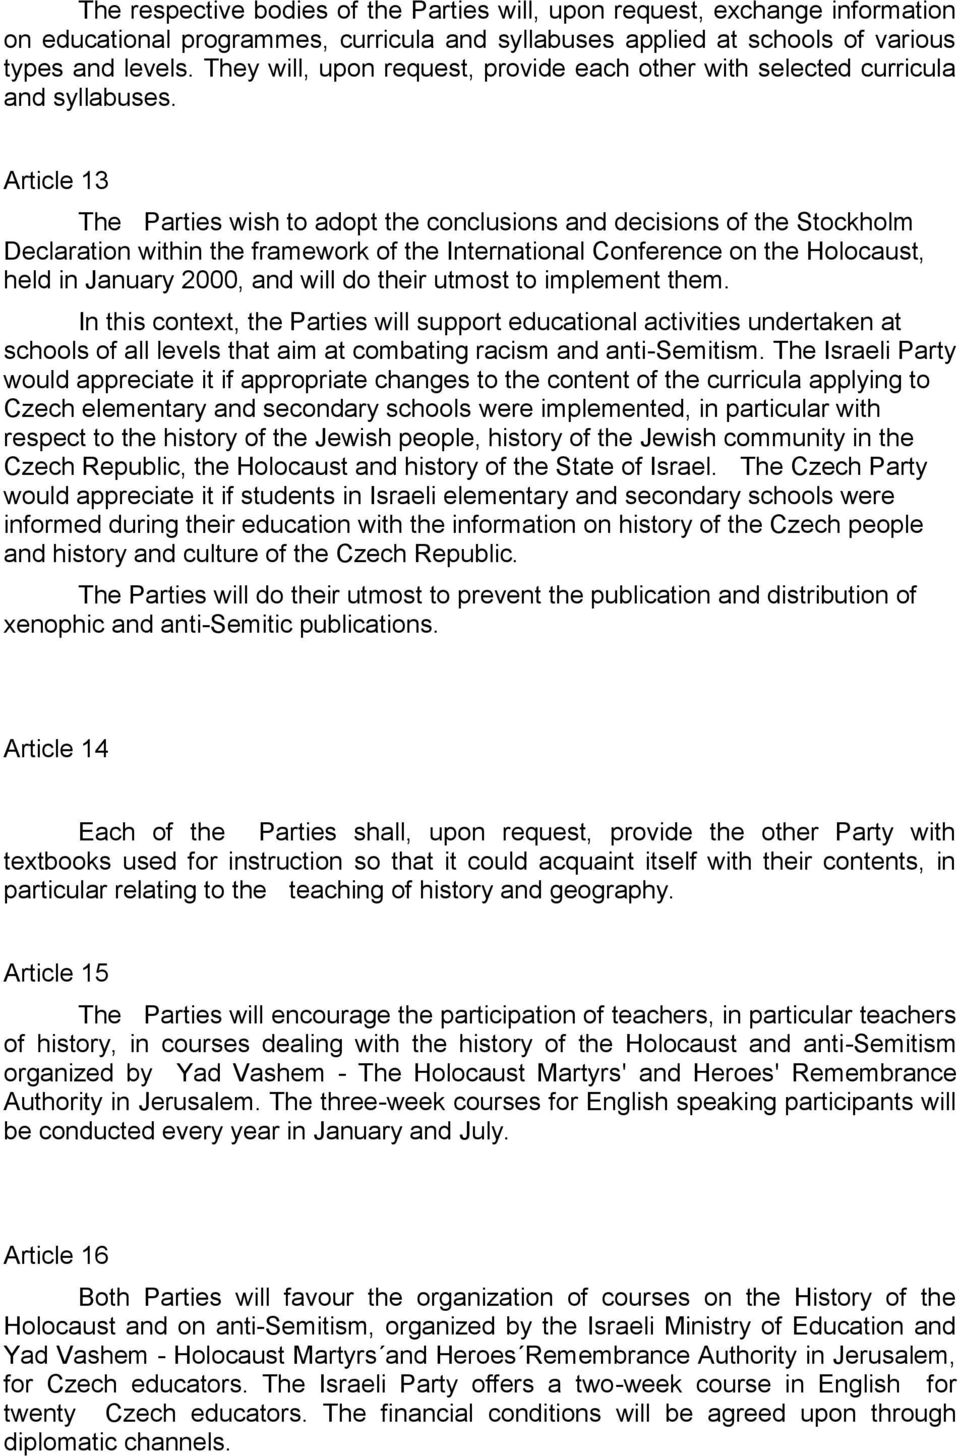 Article 13 The Parties wish to adopt the conclusions and decisions of the Stockholm Declaration within the framework of the International Conference on the Holocaust, held in January 2000, and will